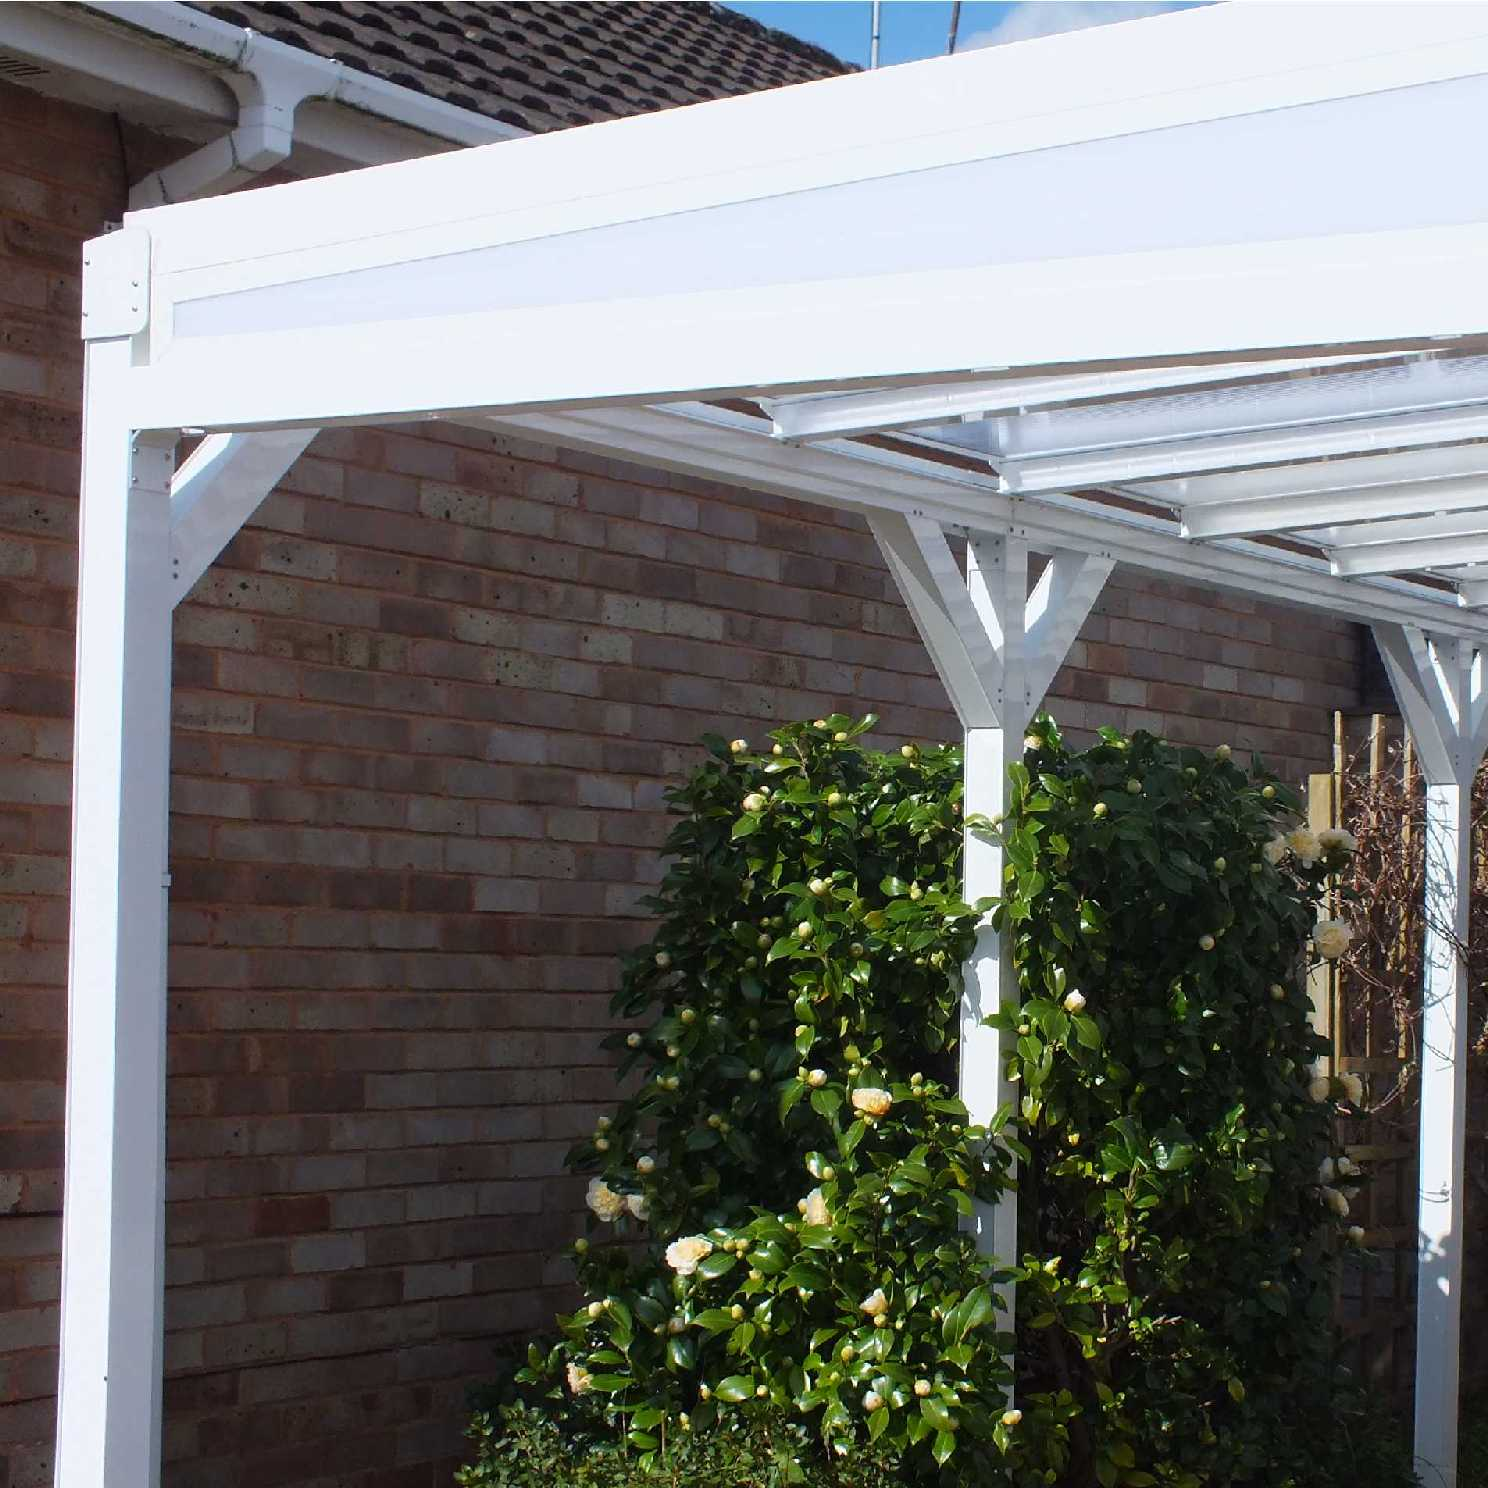 Omega Smart Lean-To Canopy with 16mm Polycarbonate Glazing - 10.6m (W) x 1.5m (P), (5) Supporting Posts from Omega Build